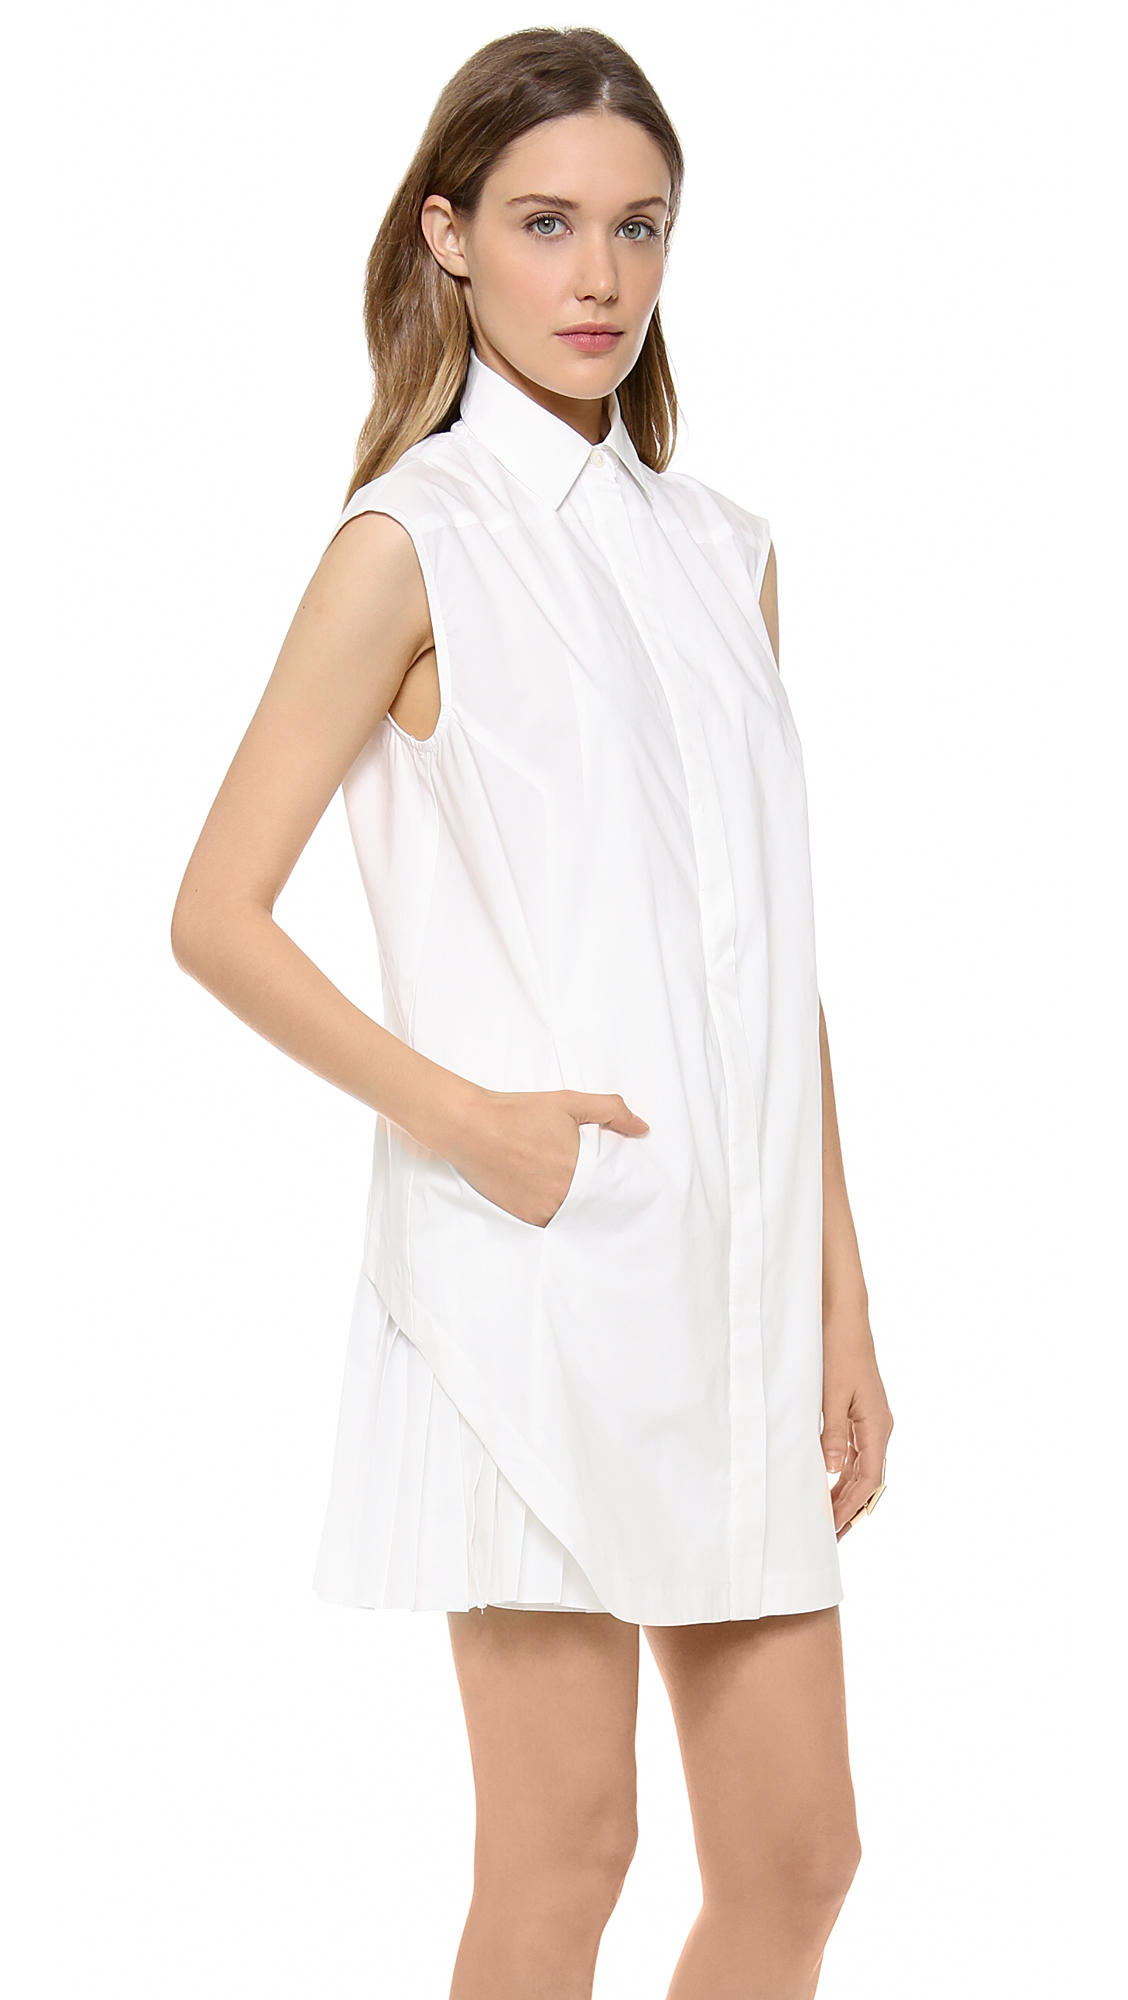 10 crosby derek lam shirt dress with pleated skirt shopbop for Derek lam 10 crosby shirt dress